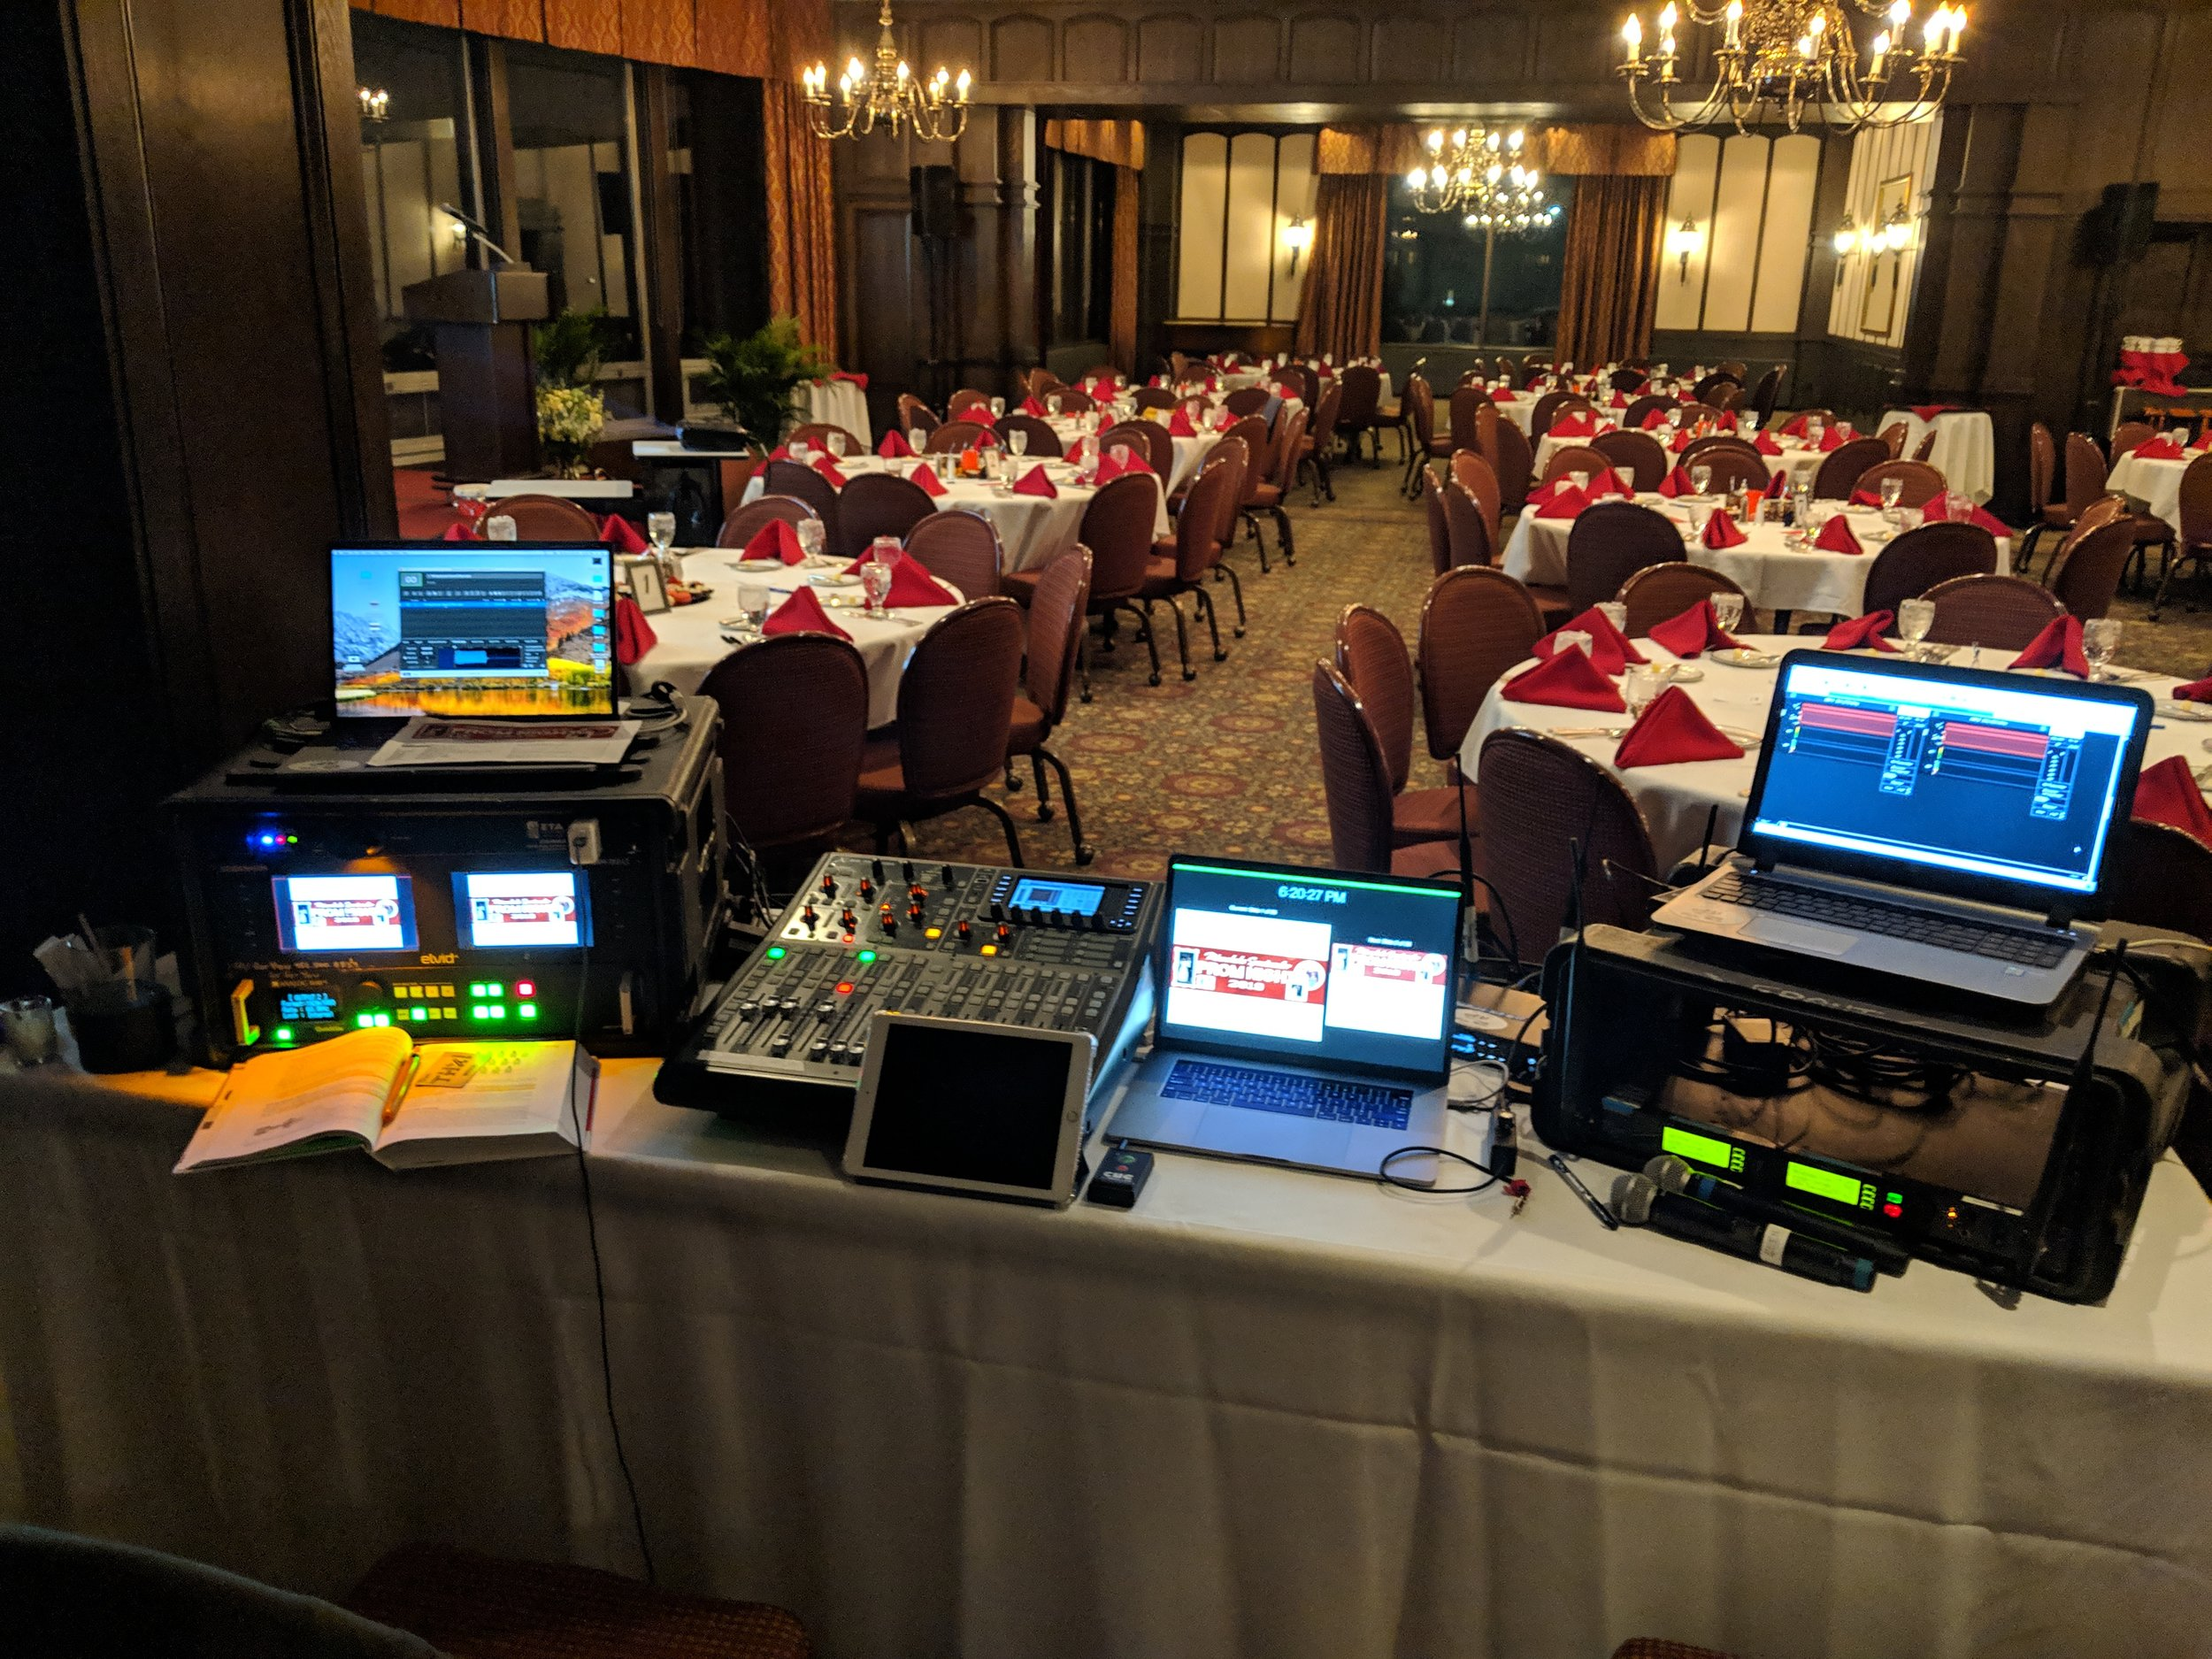 Picture of AV for You Rental Equipment at the Town and Country Club in St Paul